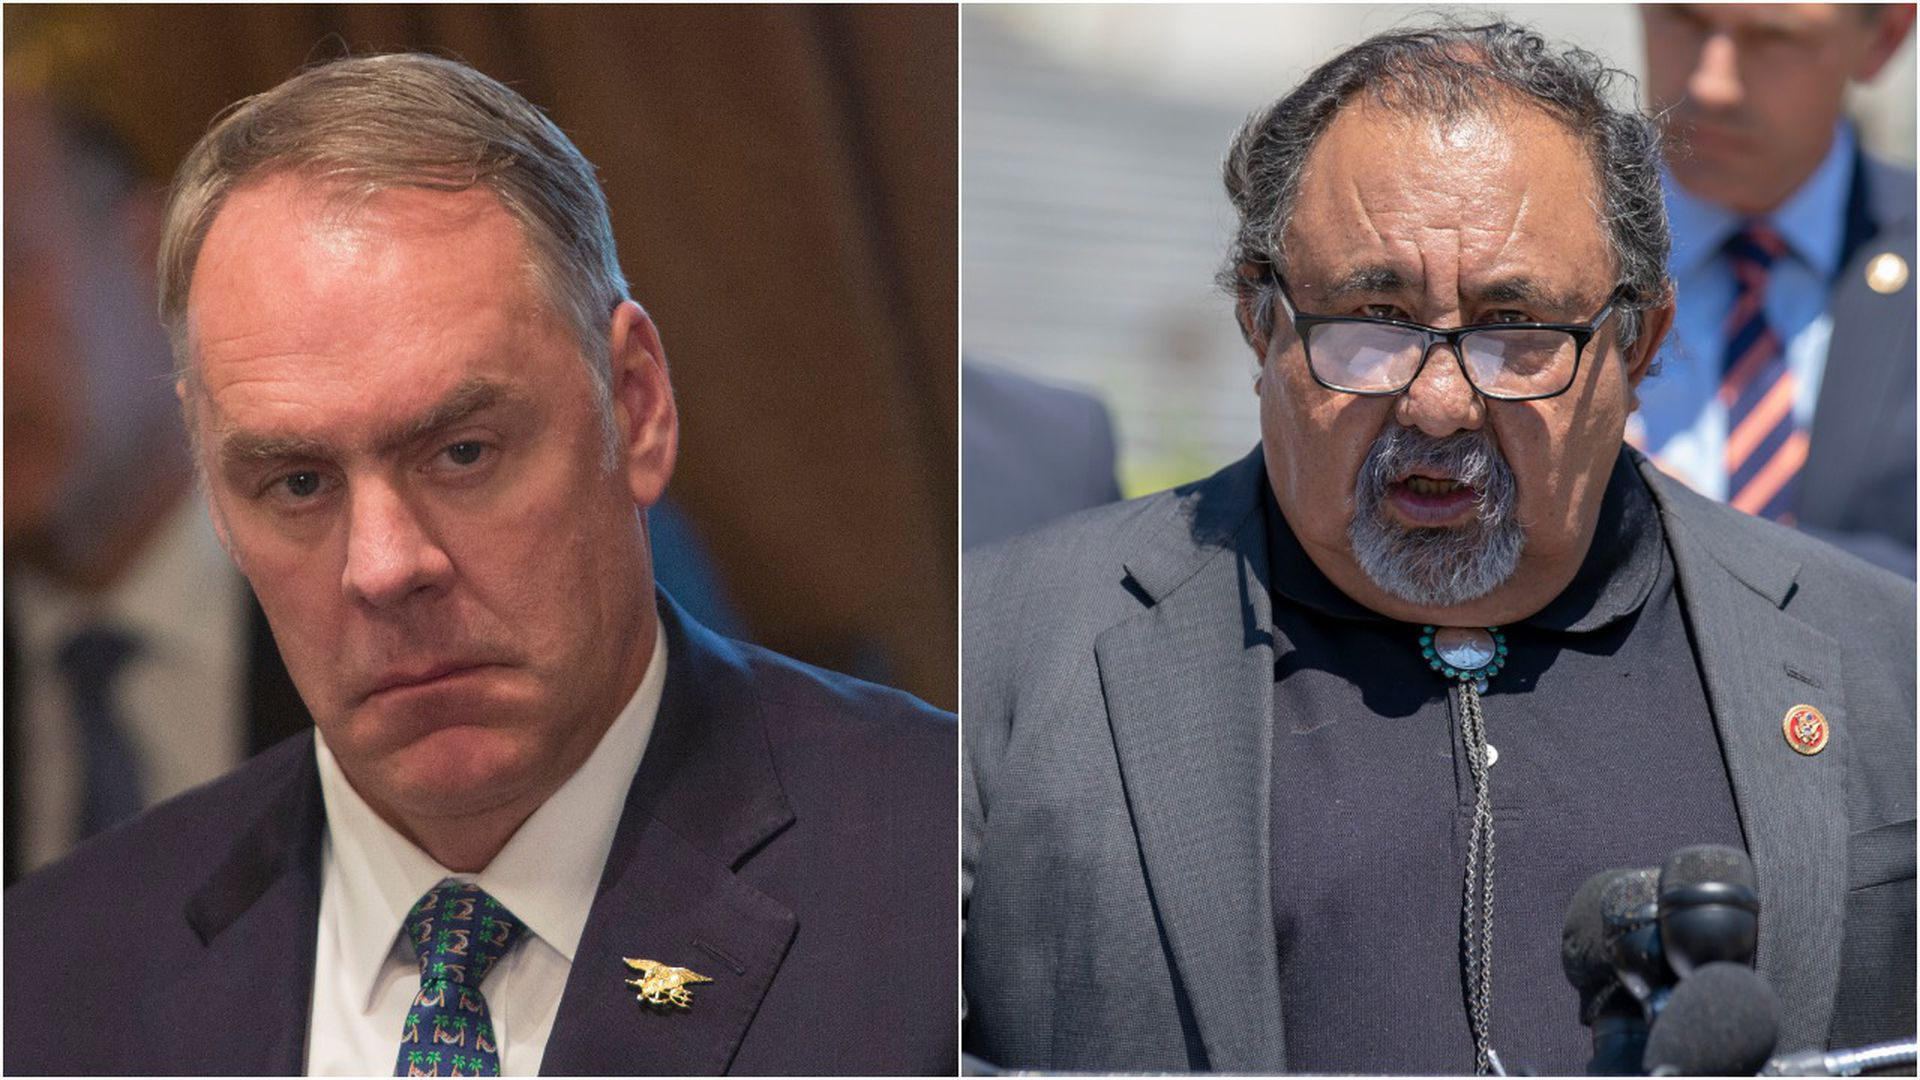 Split picture of Interior Secretary Ryan Zinke on the left and Rep. Raúl Grijalva on the right